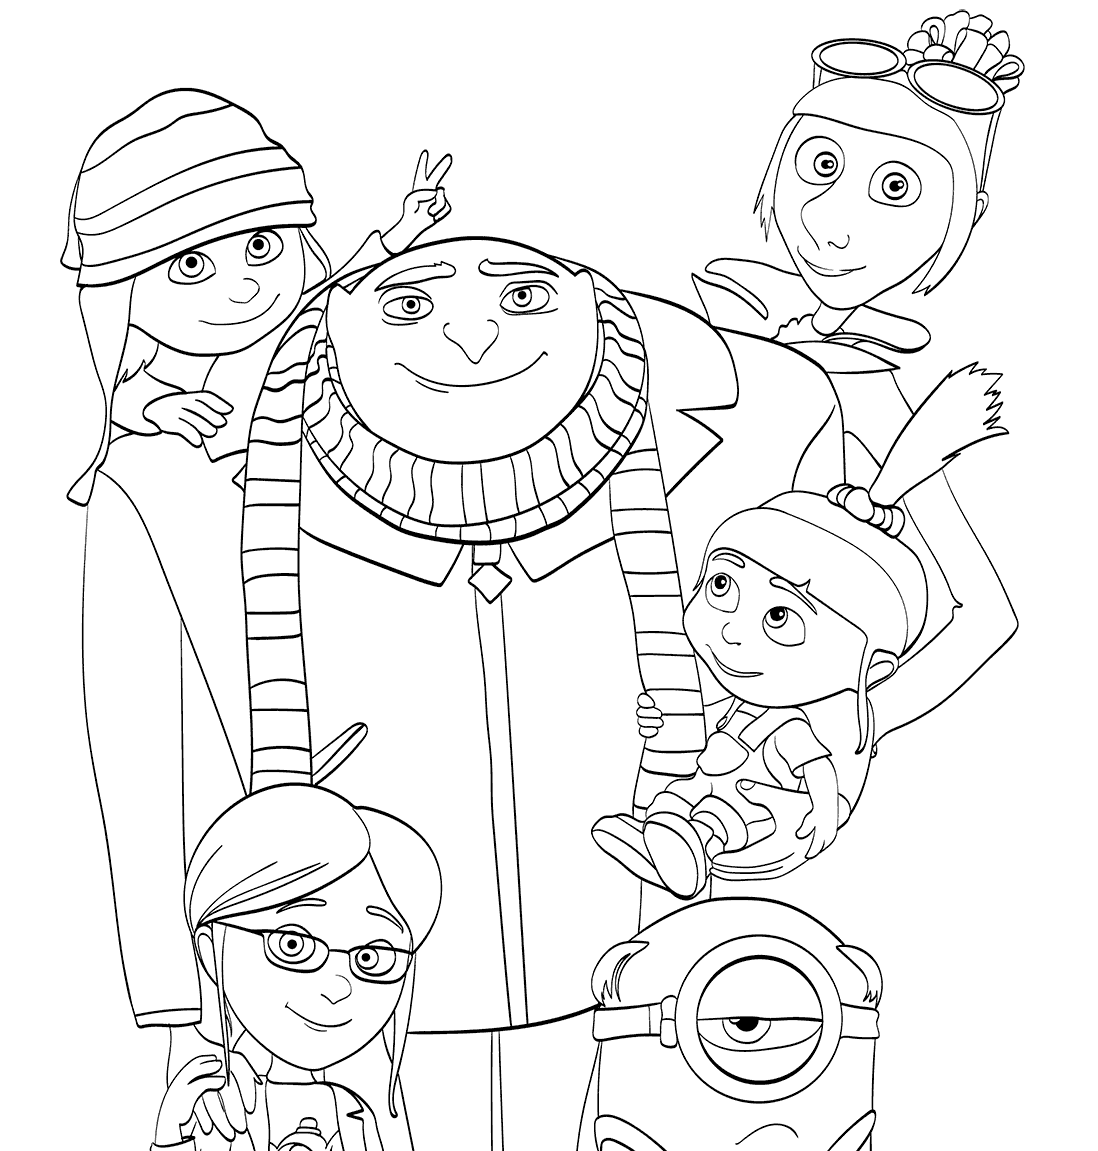 despicable me printables despicable me 3 coloring and activity sheets free printables despicable me printables